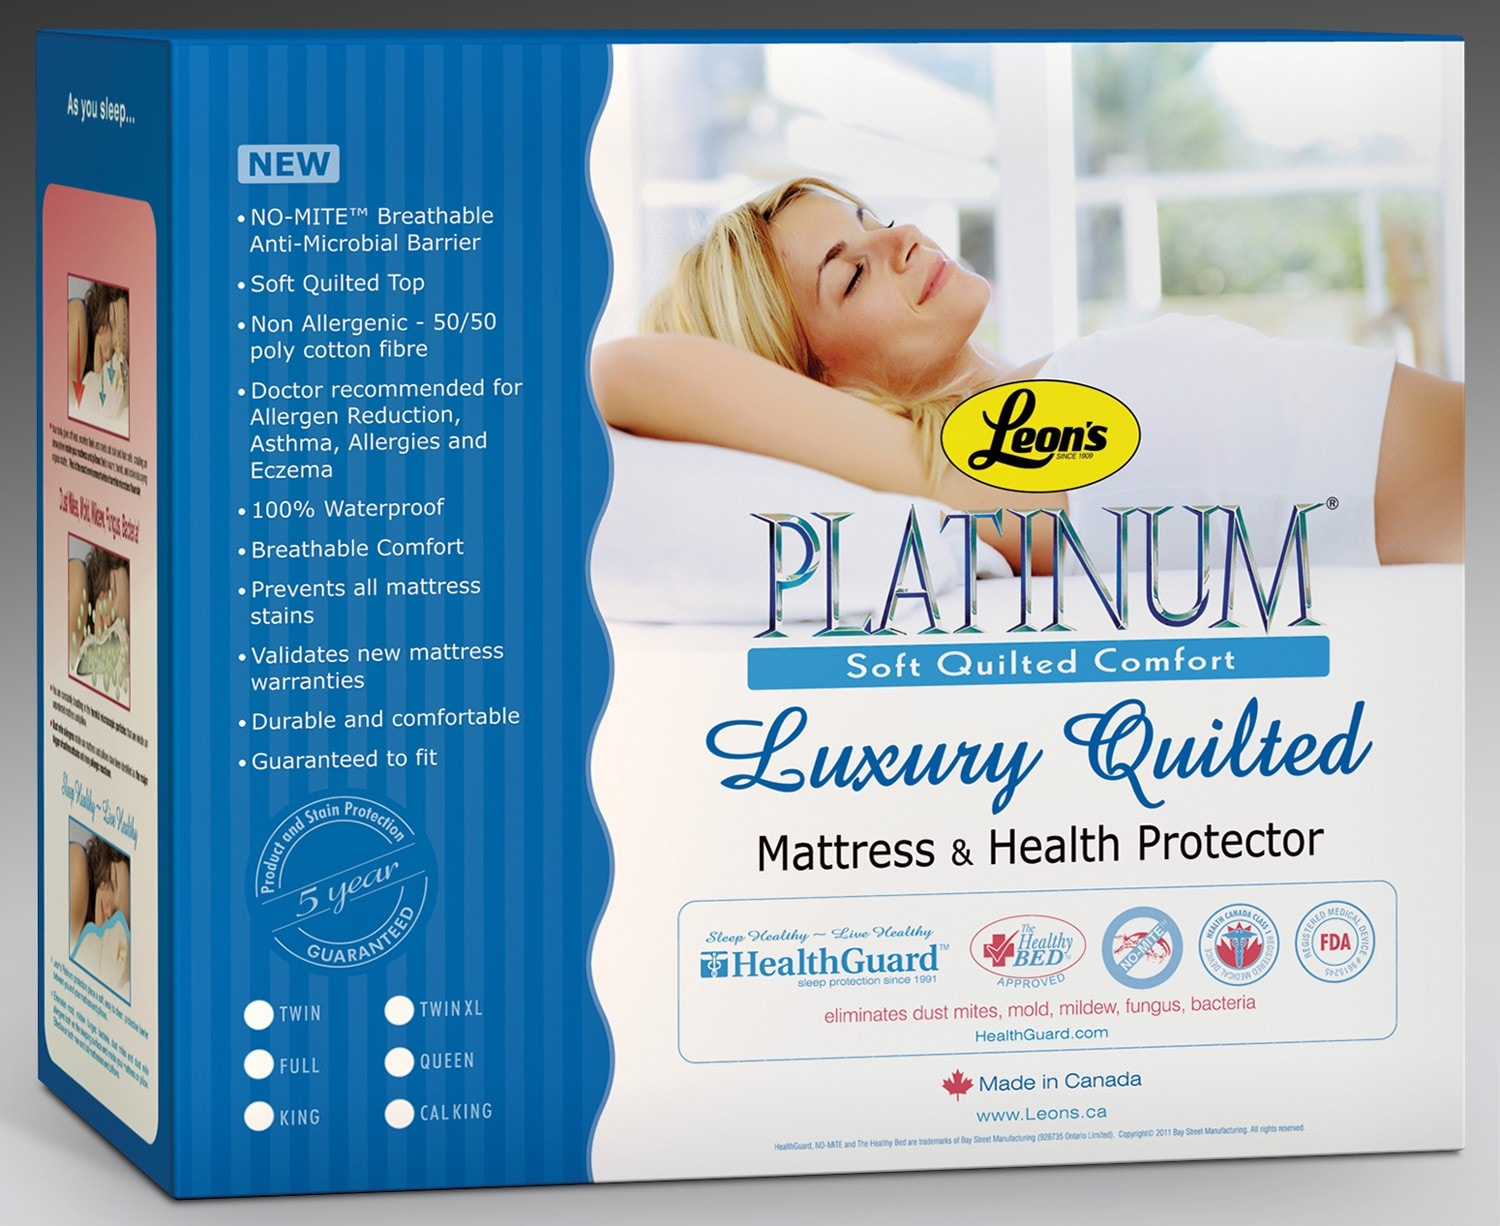 Mattresses and Bedding - Platinum Plus Full Mattress Protector